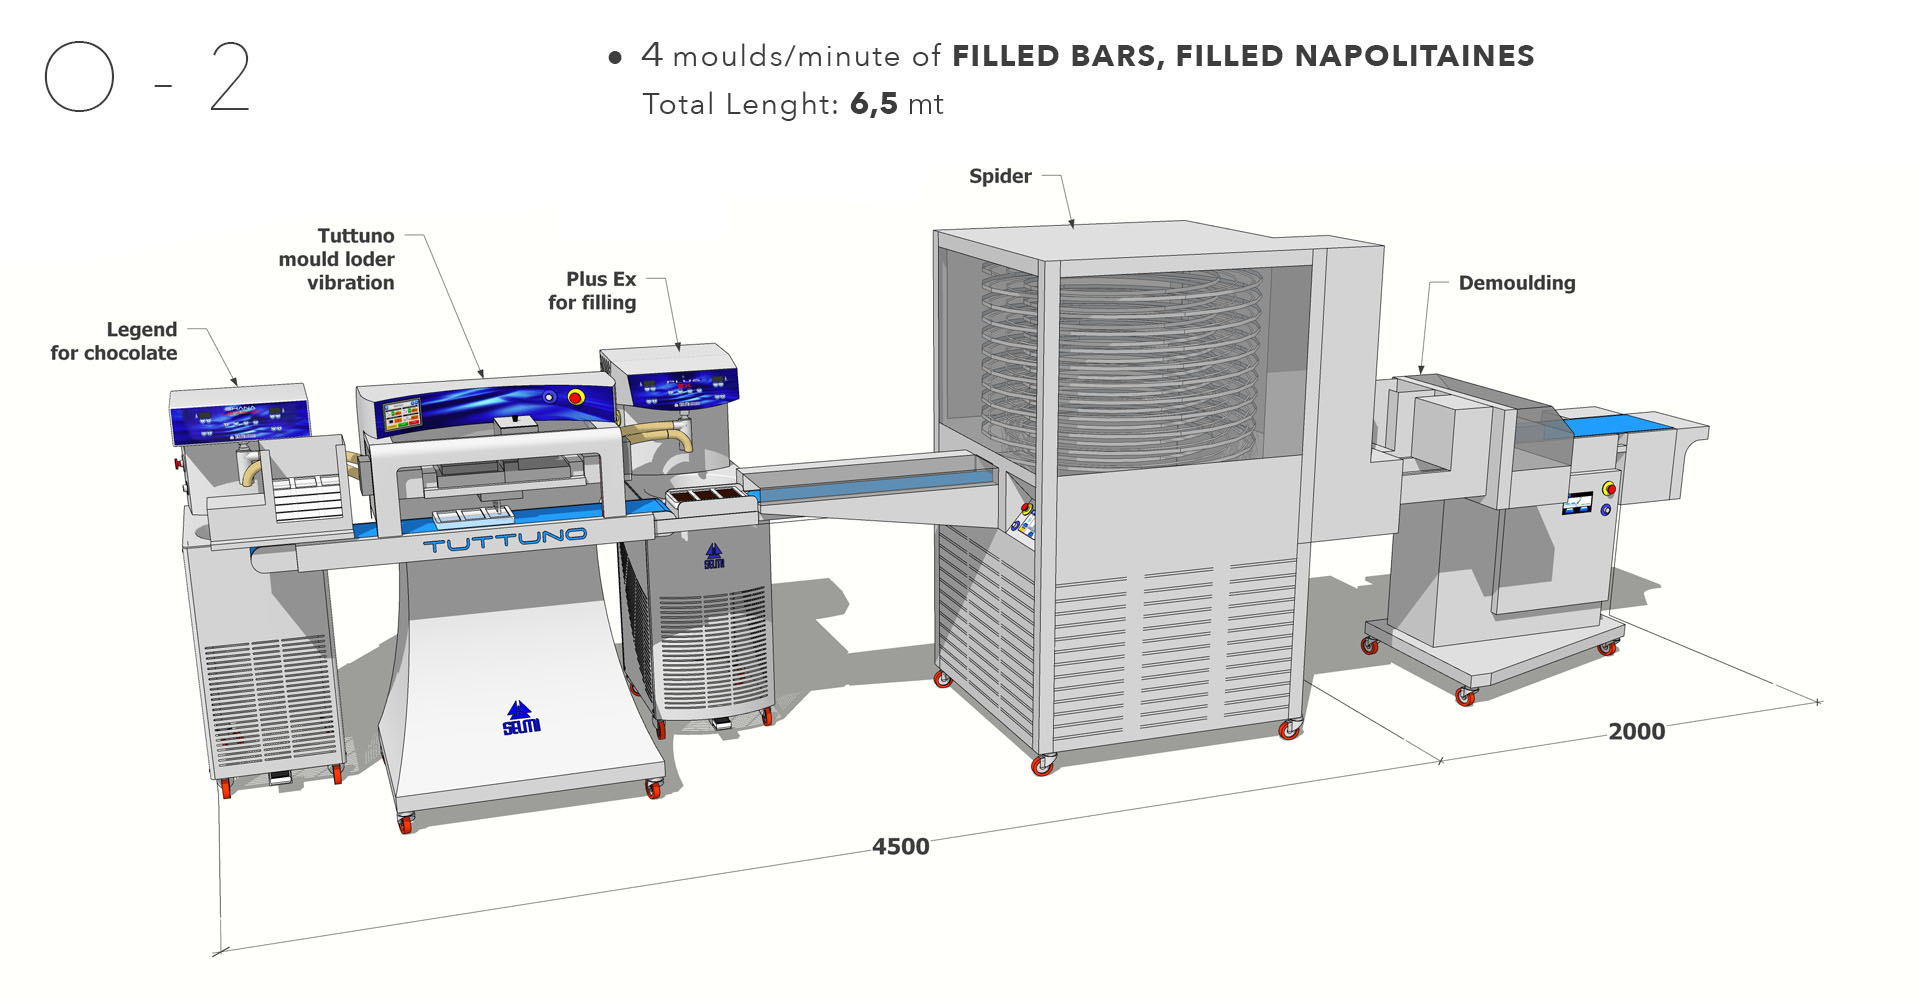 Tuttuno Oneshot Depositor: production line for 4 moulds/minute of filled bars, filled napolitaines